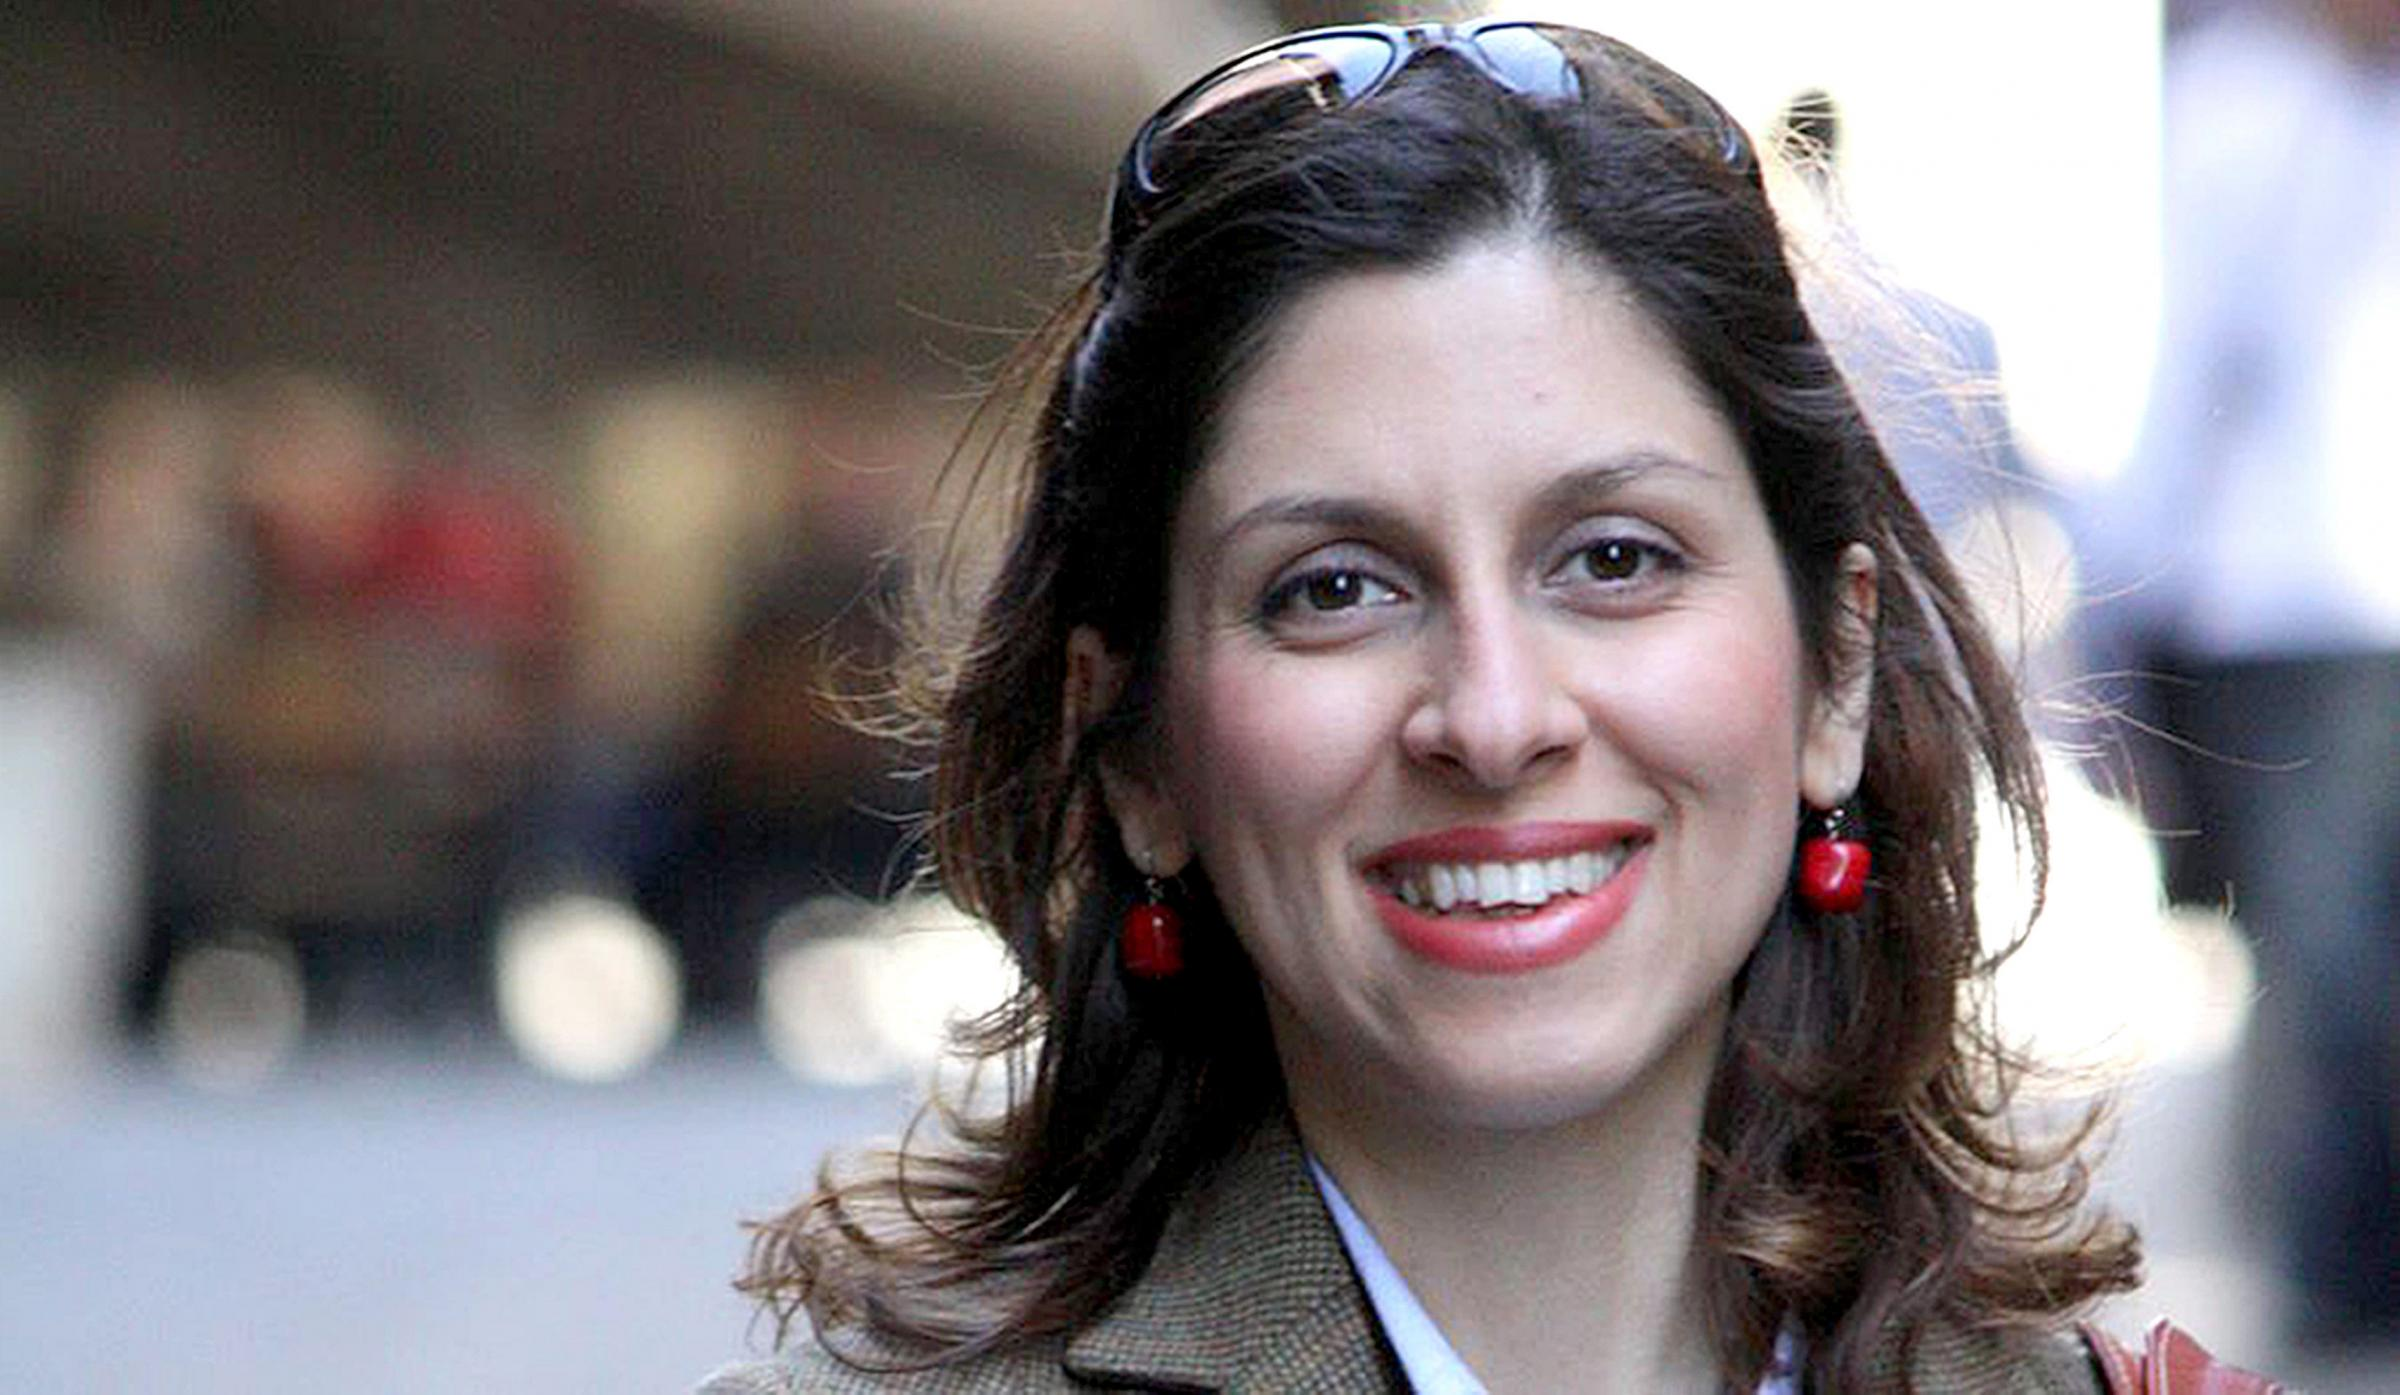 BEST QUALITY AVAILABLE.Undated family handout file photo of British-Iranian mother charity worker Nazanin Zaghari-Ratcliffe, detained in Tehran, who is to embark on a hunger strike over being denied health care, her husband said. PRESS ASSOCIATION Photo.